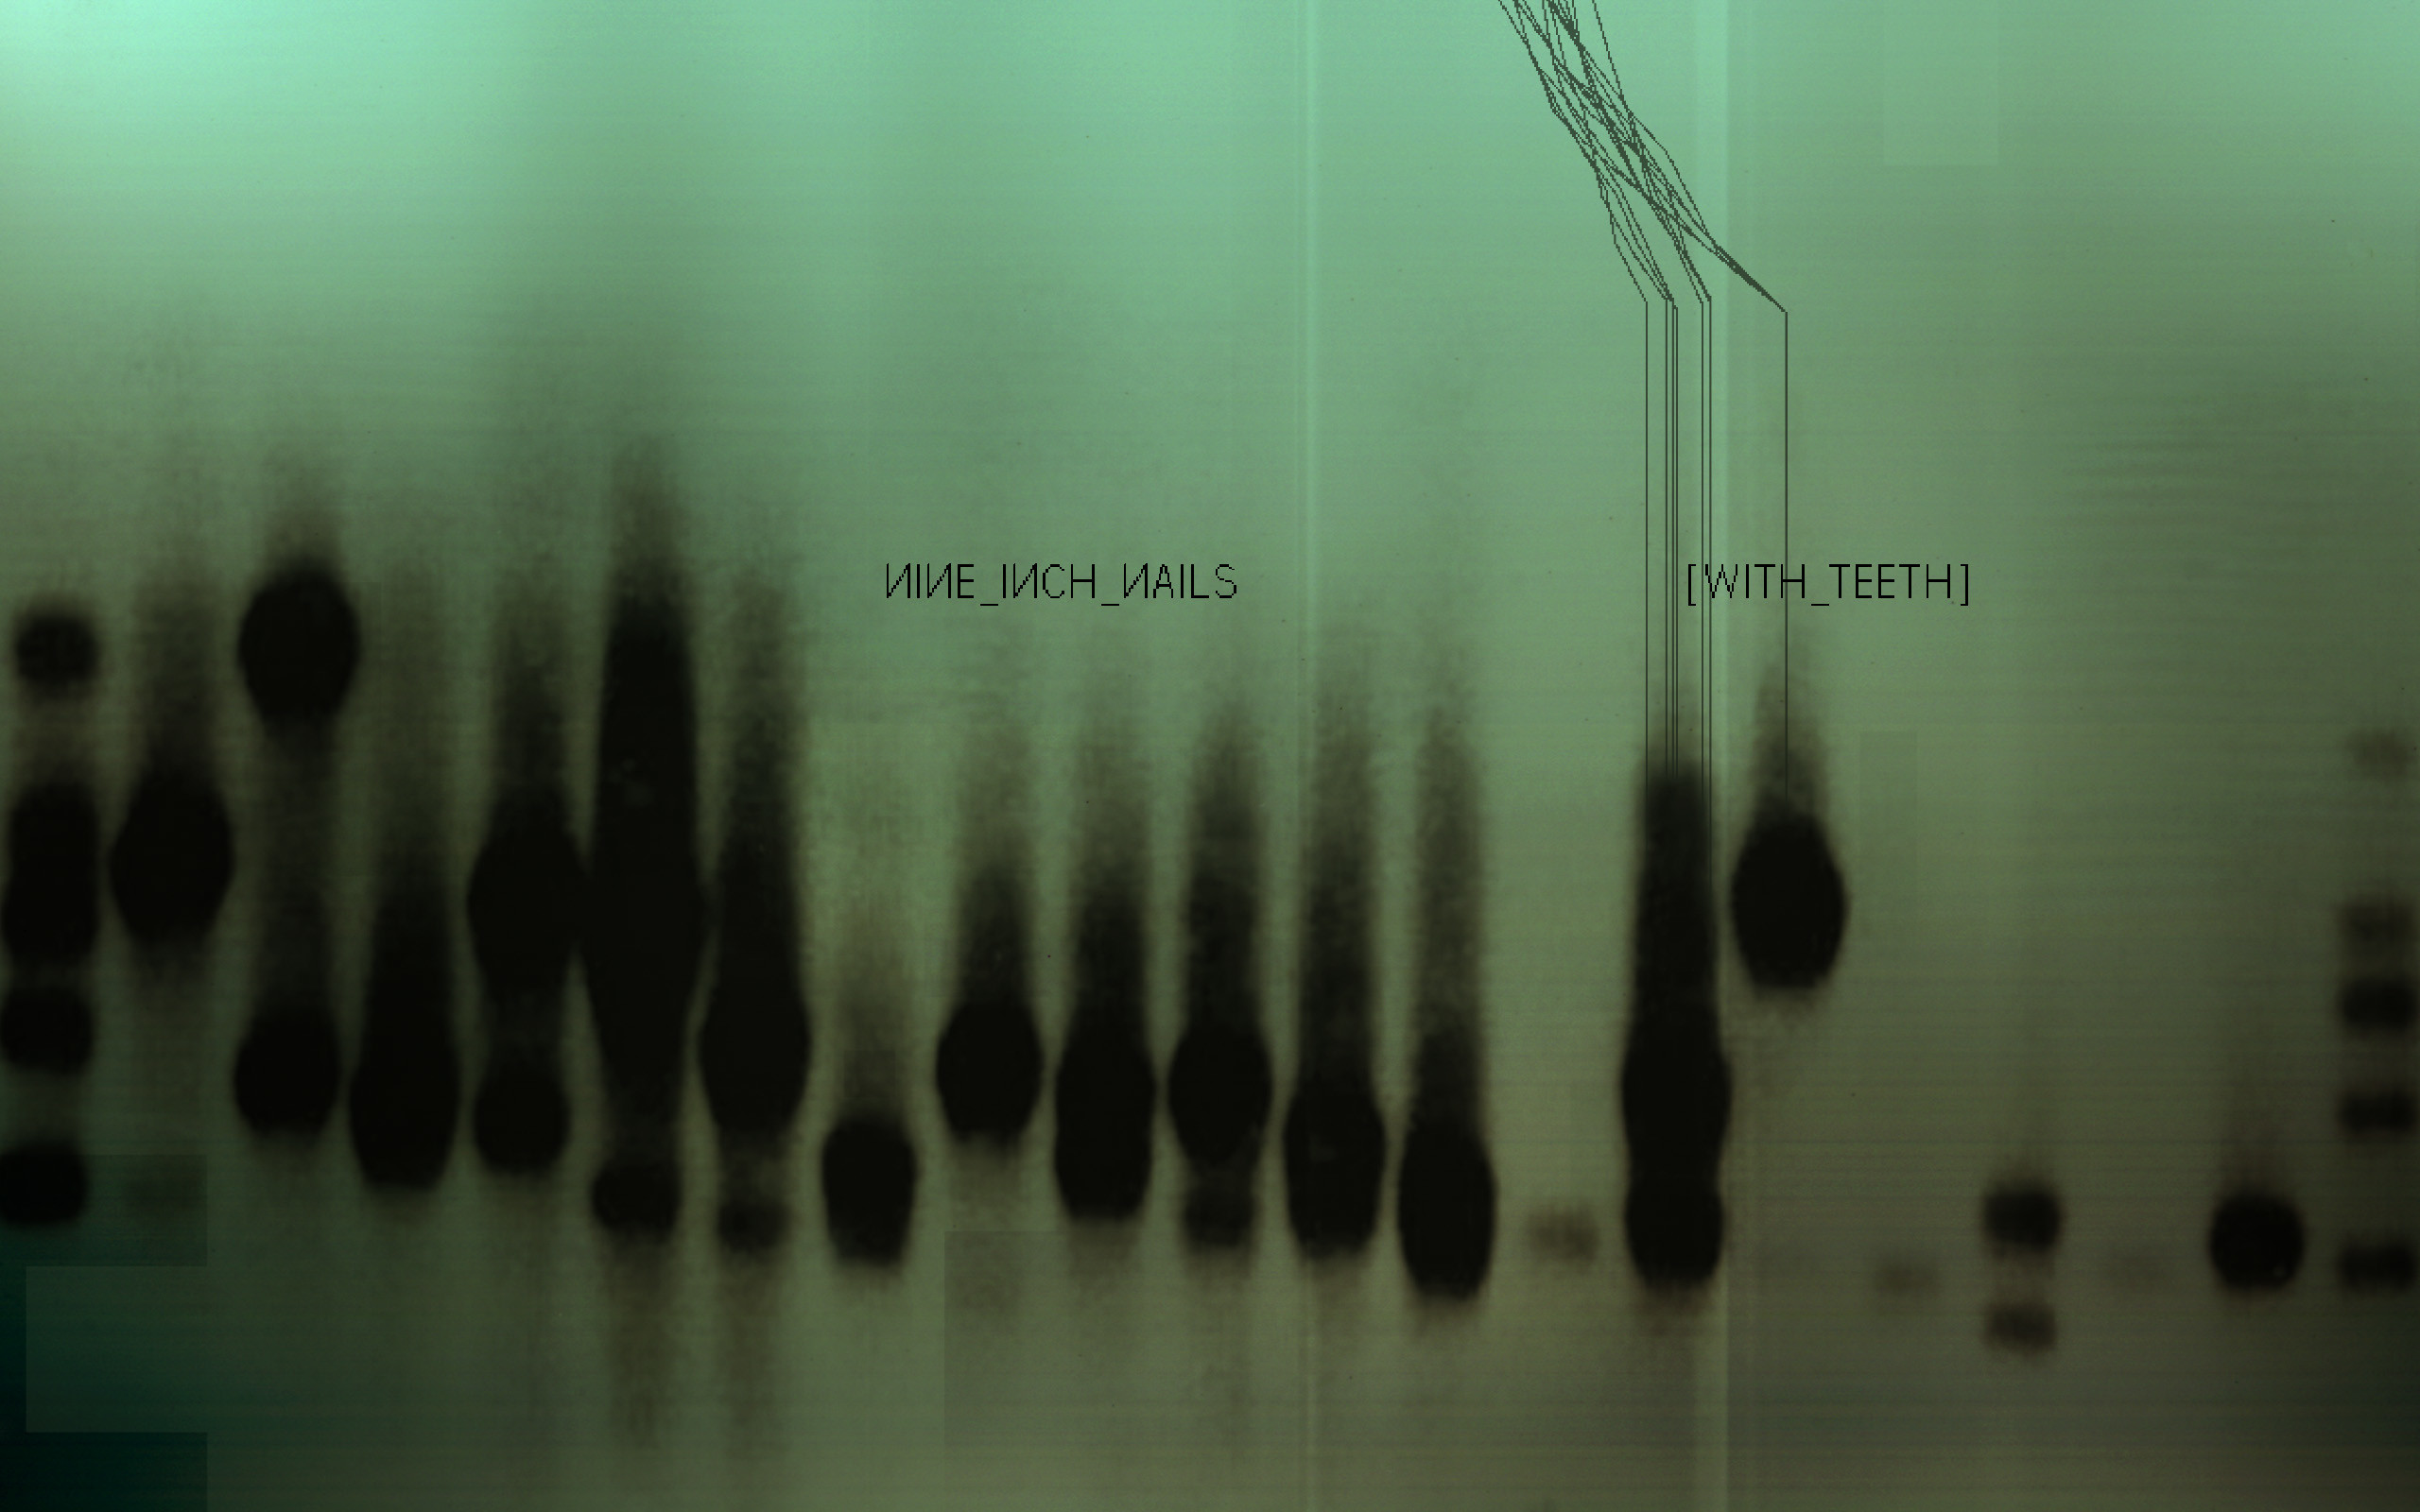 2560x1600 Free Nine Inch Nails Album Cover Wallpapers, Free Nine Inch Nails .